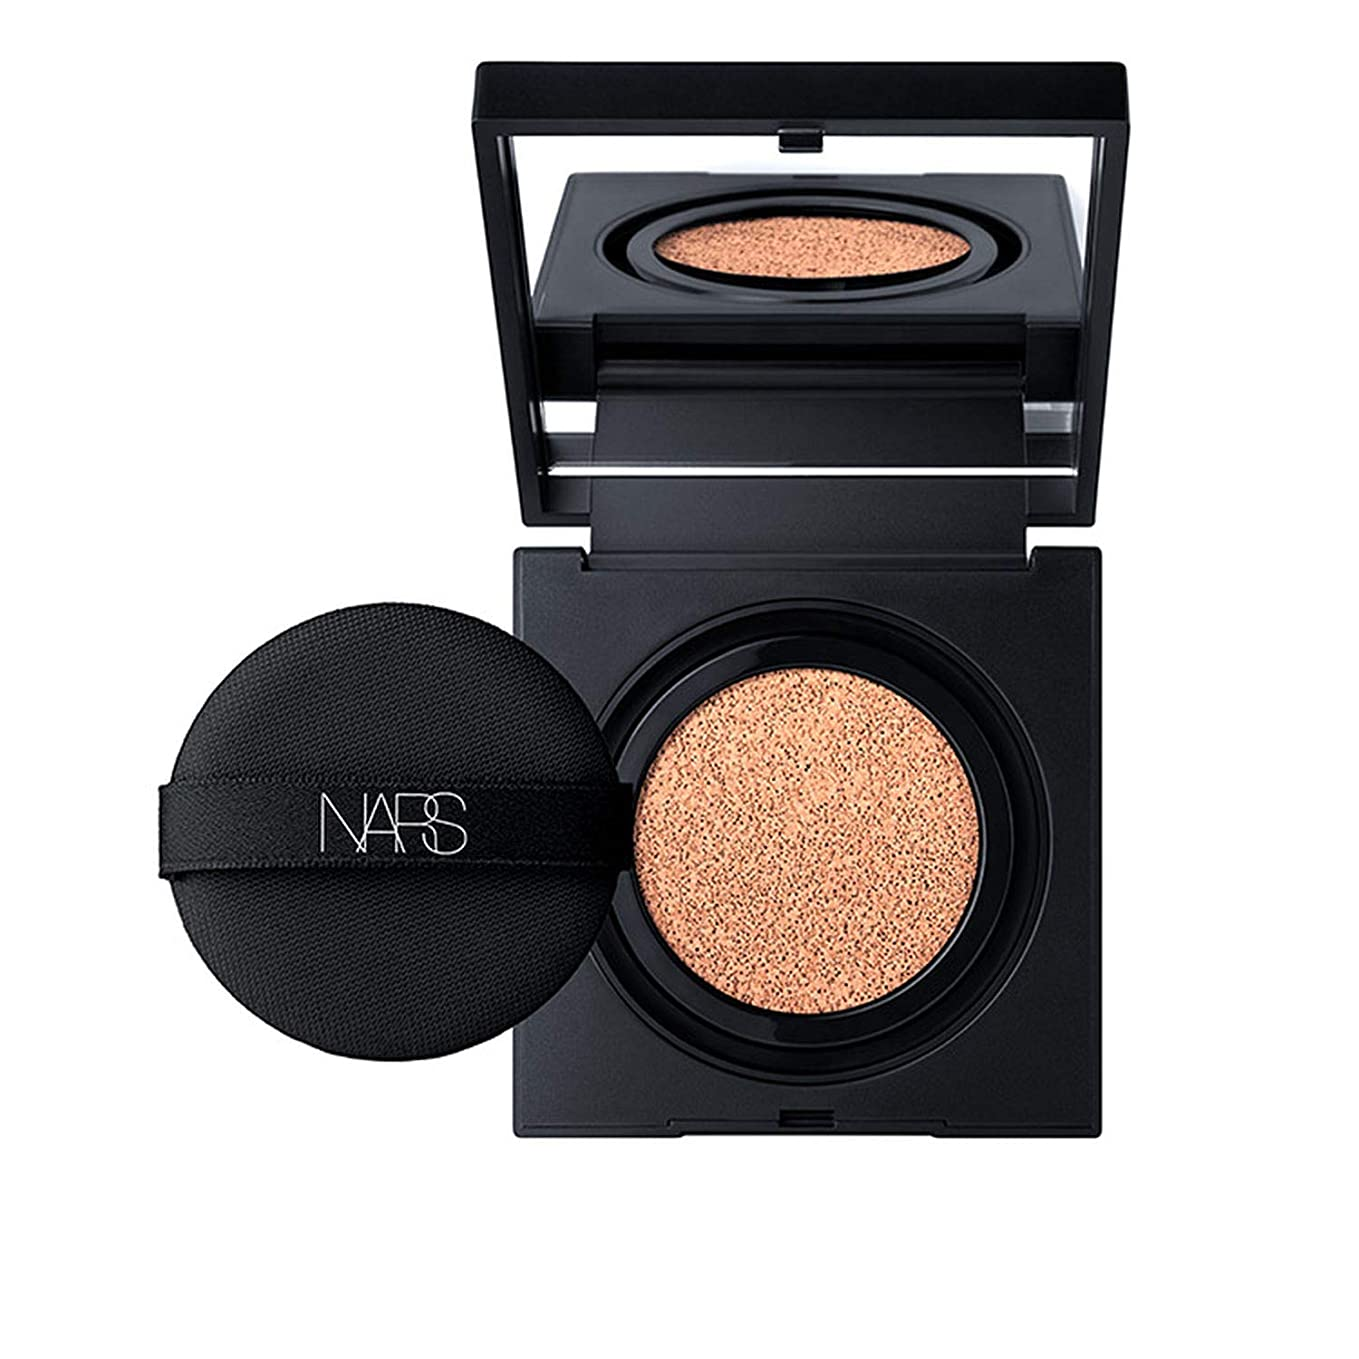 ピア以降衝突するNars(ナーズ) Natural Radiant Longwear Cushion Foundation 12g # Samcheong